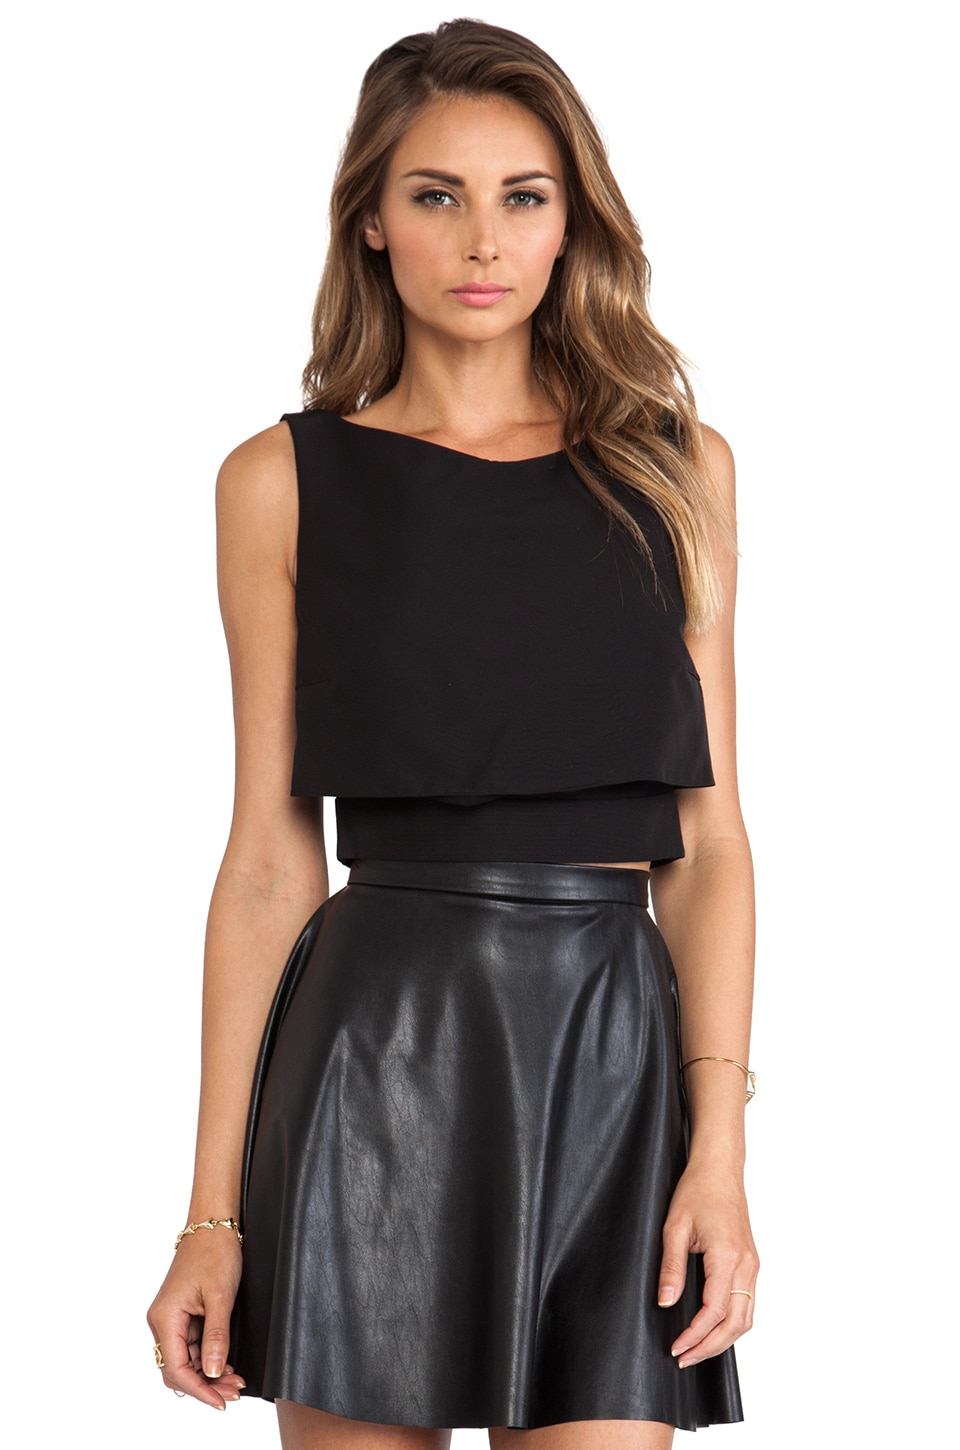 McQ Alexander McQueen Party Top in Velvet Black